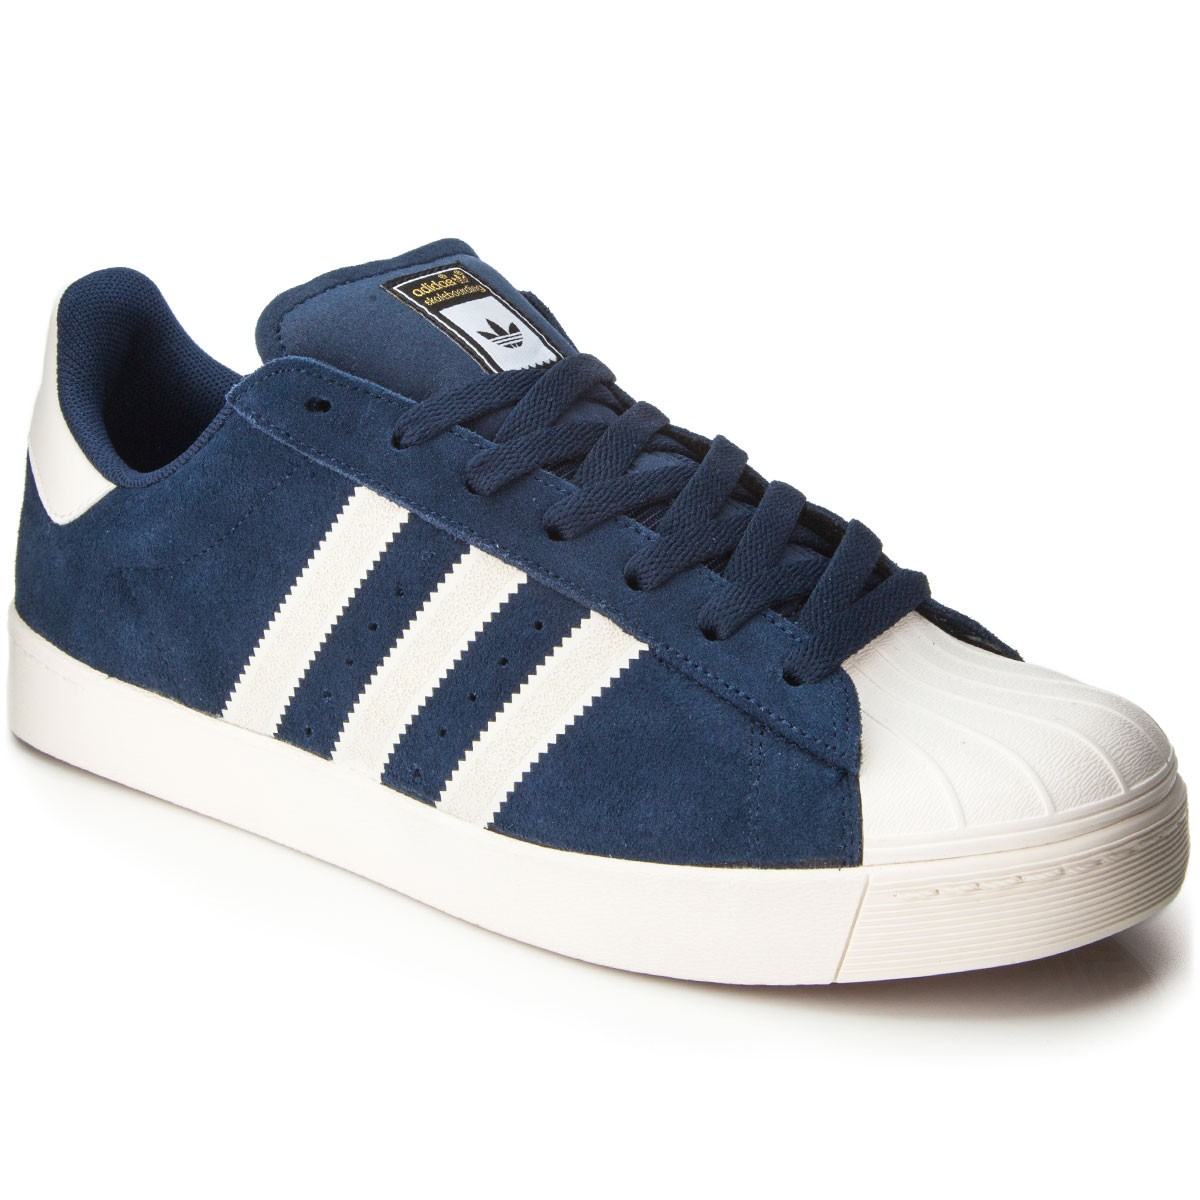 Cheap Adidas Superstar Ni a 35